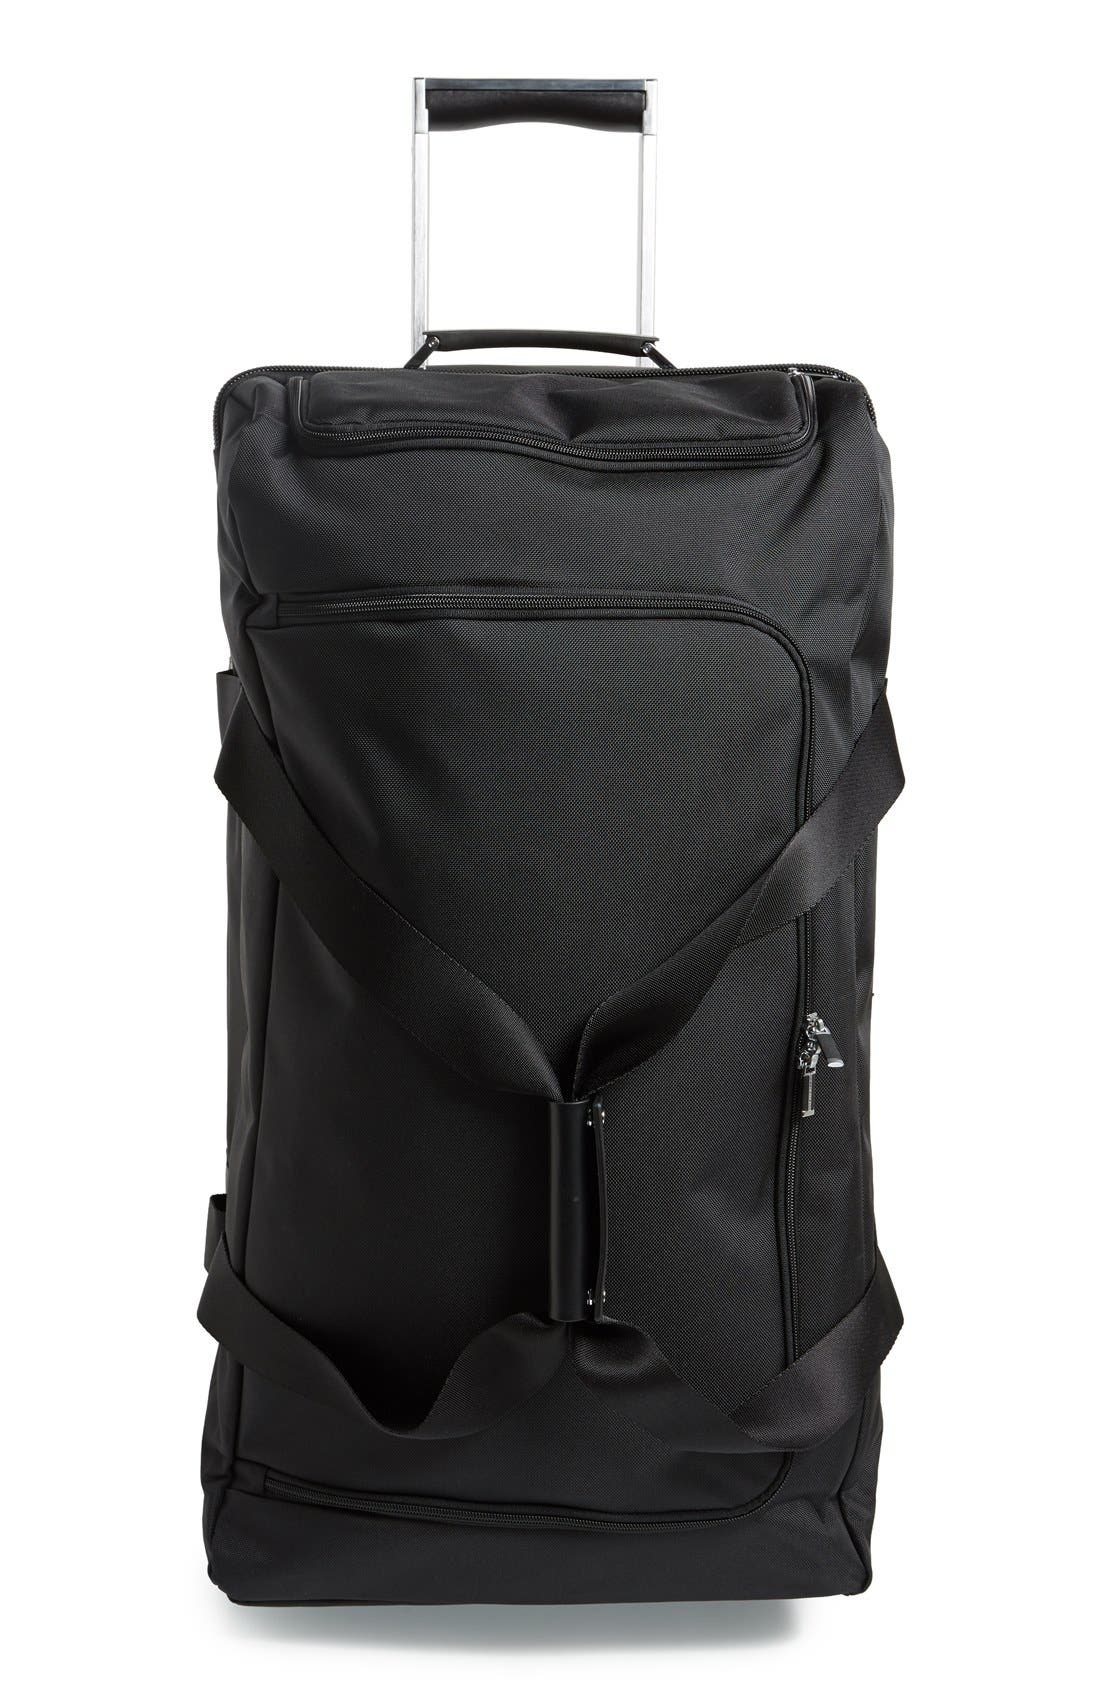 Porsche Design Roadster 3.0 Wheeled 29-Inch Duffel Bag